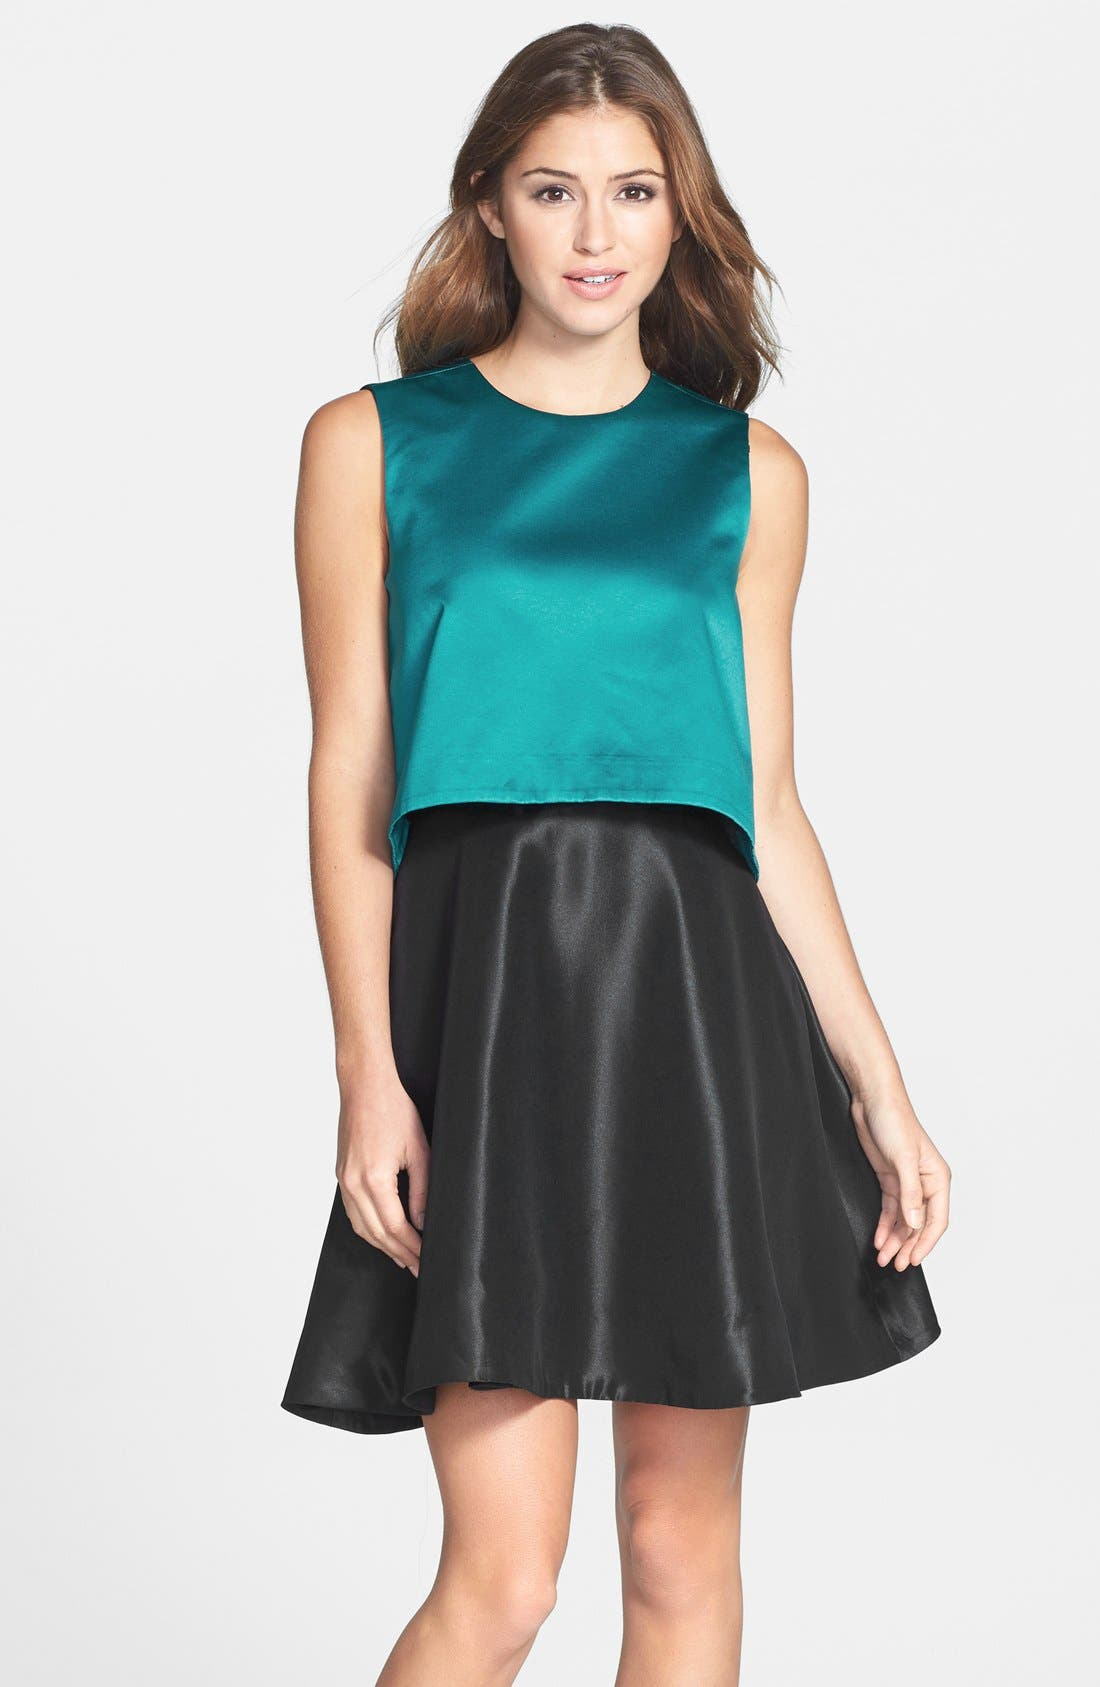 ERIN ERIN FETHERSTON, 'Tippy' Popover Satin Fit & Flare Dress, Main thumbnail 1, color, 440